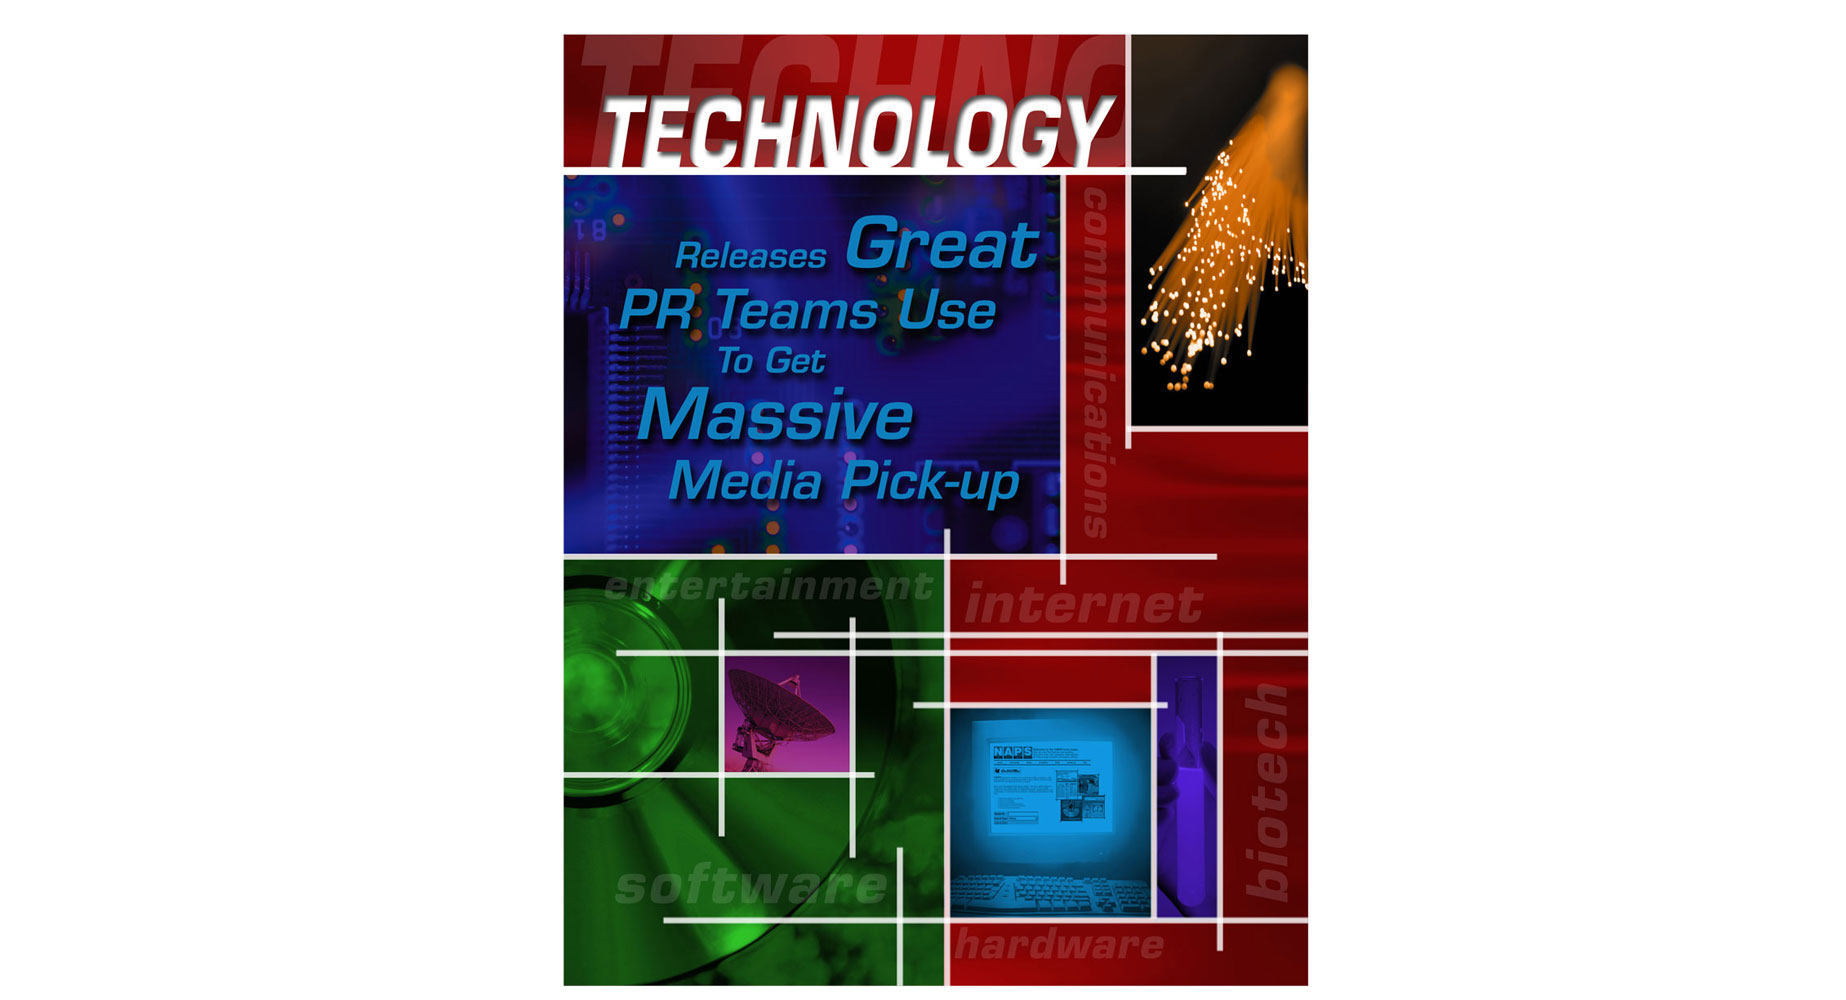 Professional Services technology brochure design